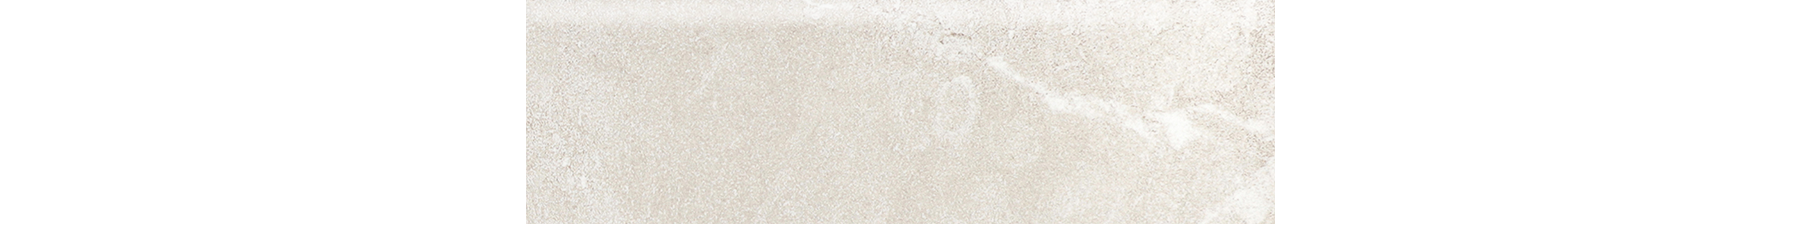 3x10 Levian Snow Bullnose Ceramic Wall Tile